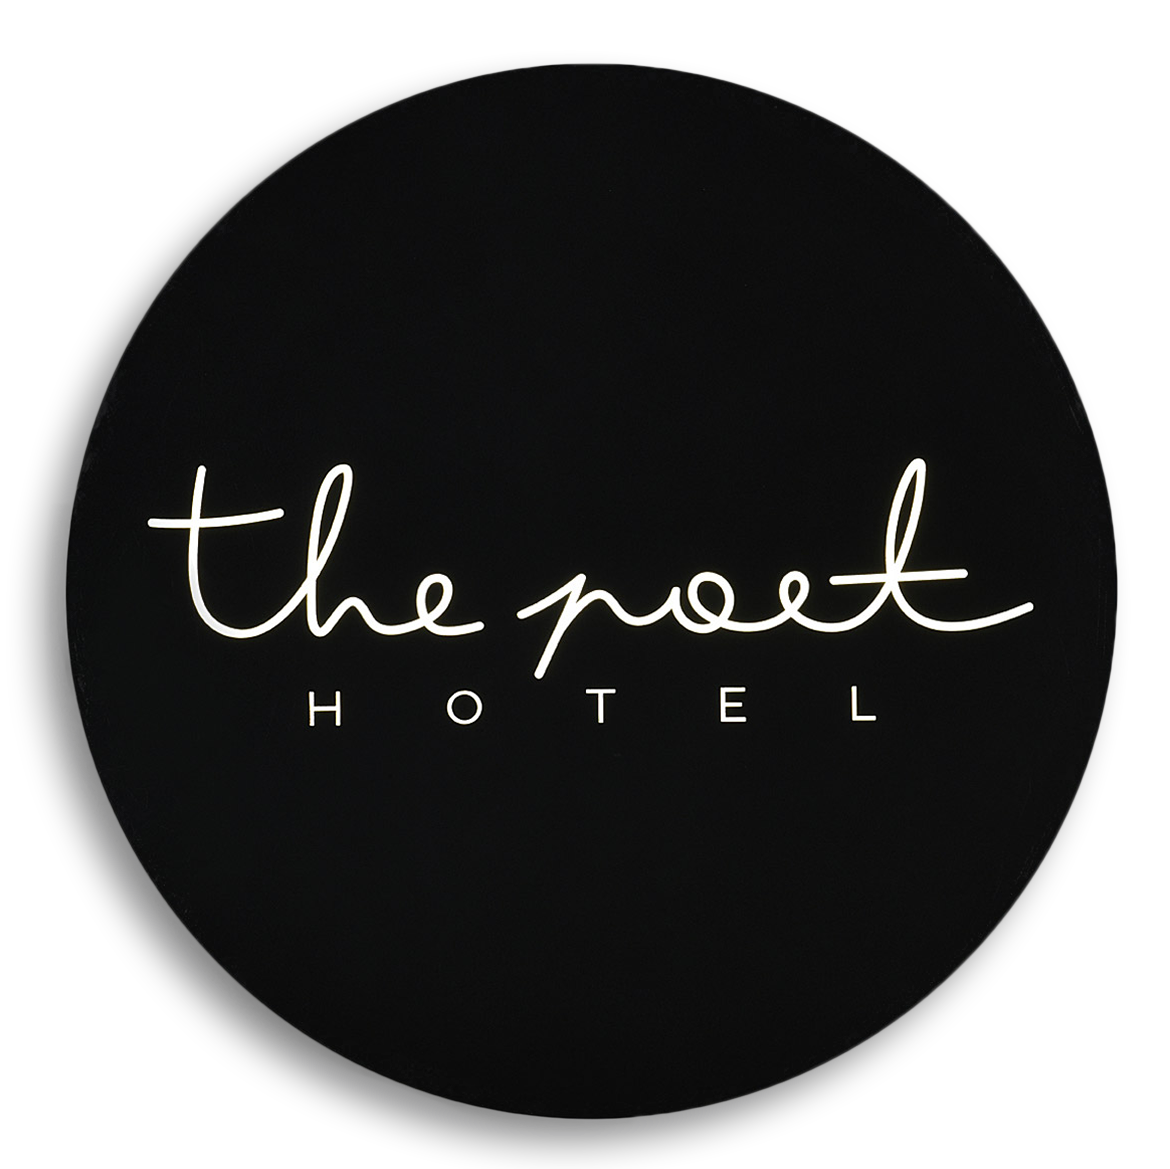 FDA_The_Poet_Hotel_La_Spezia